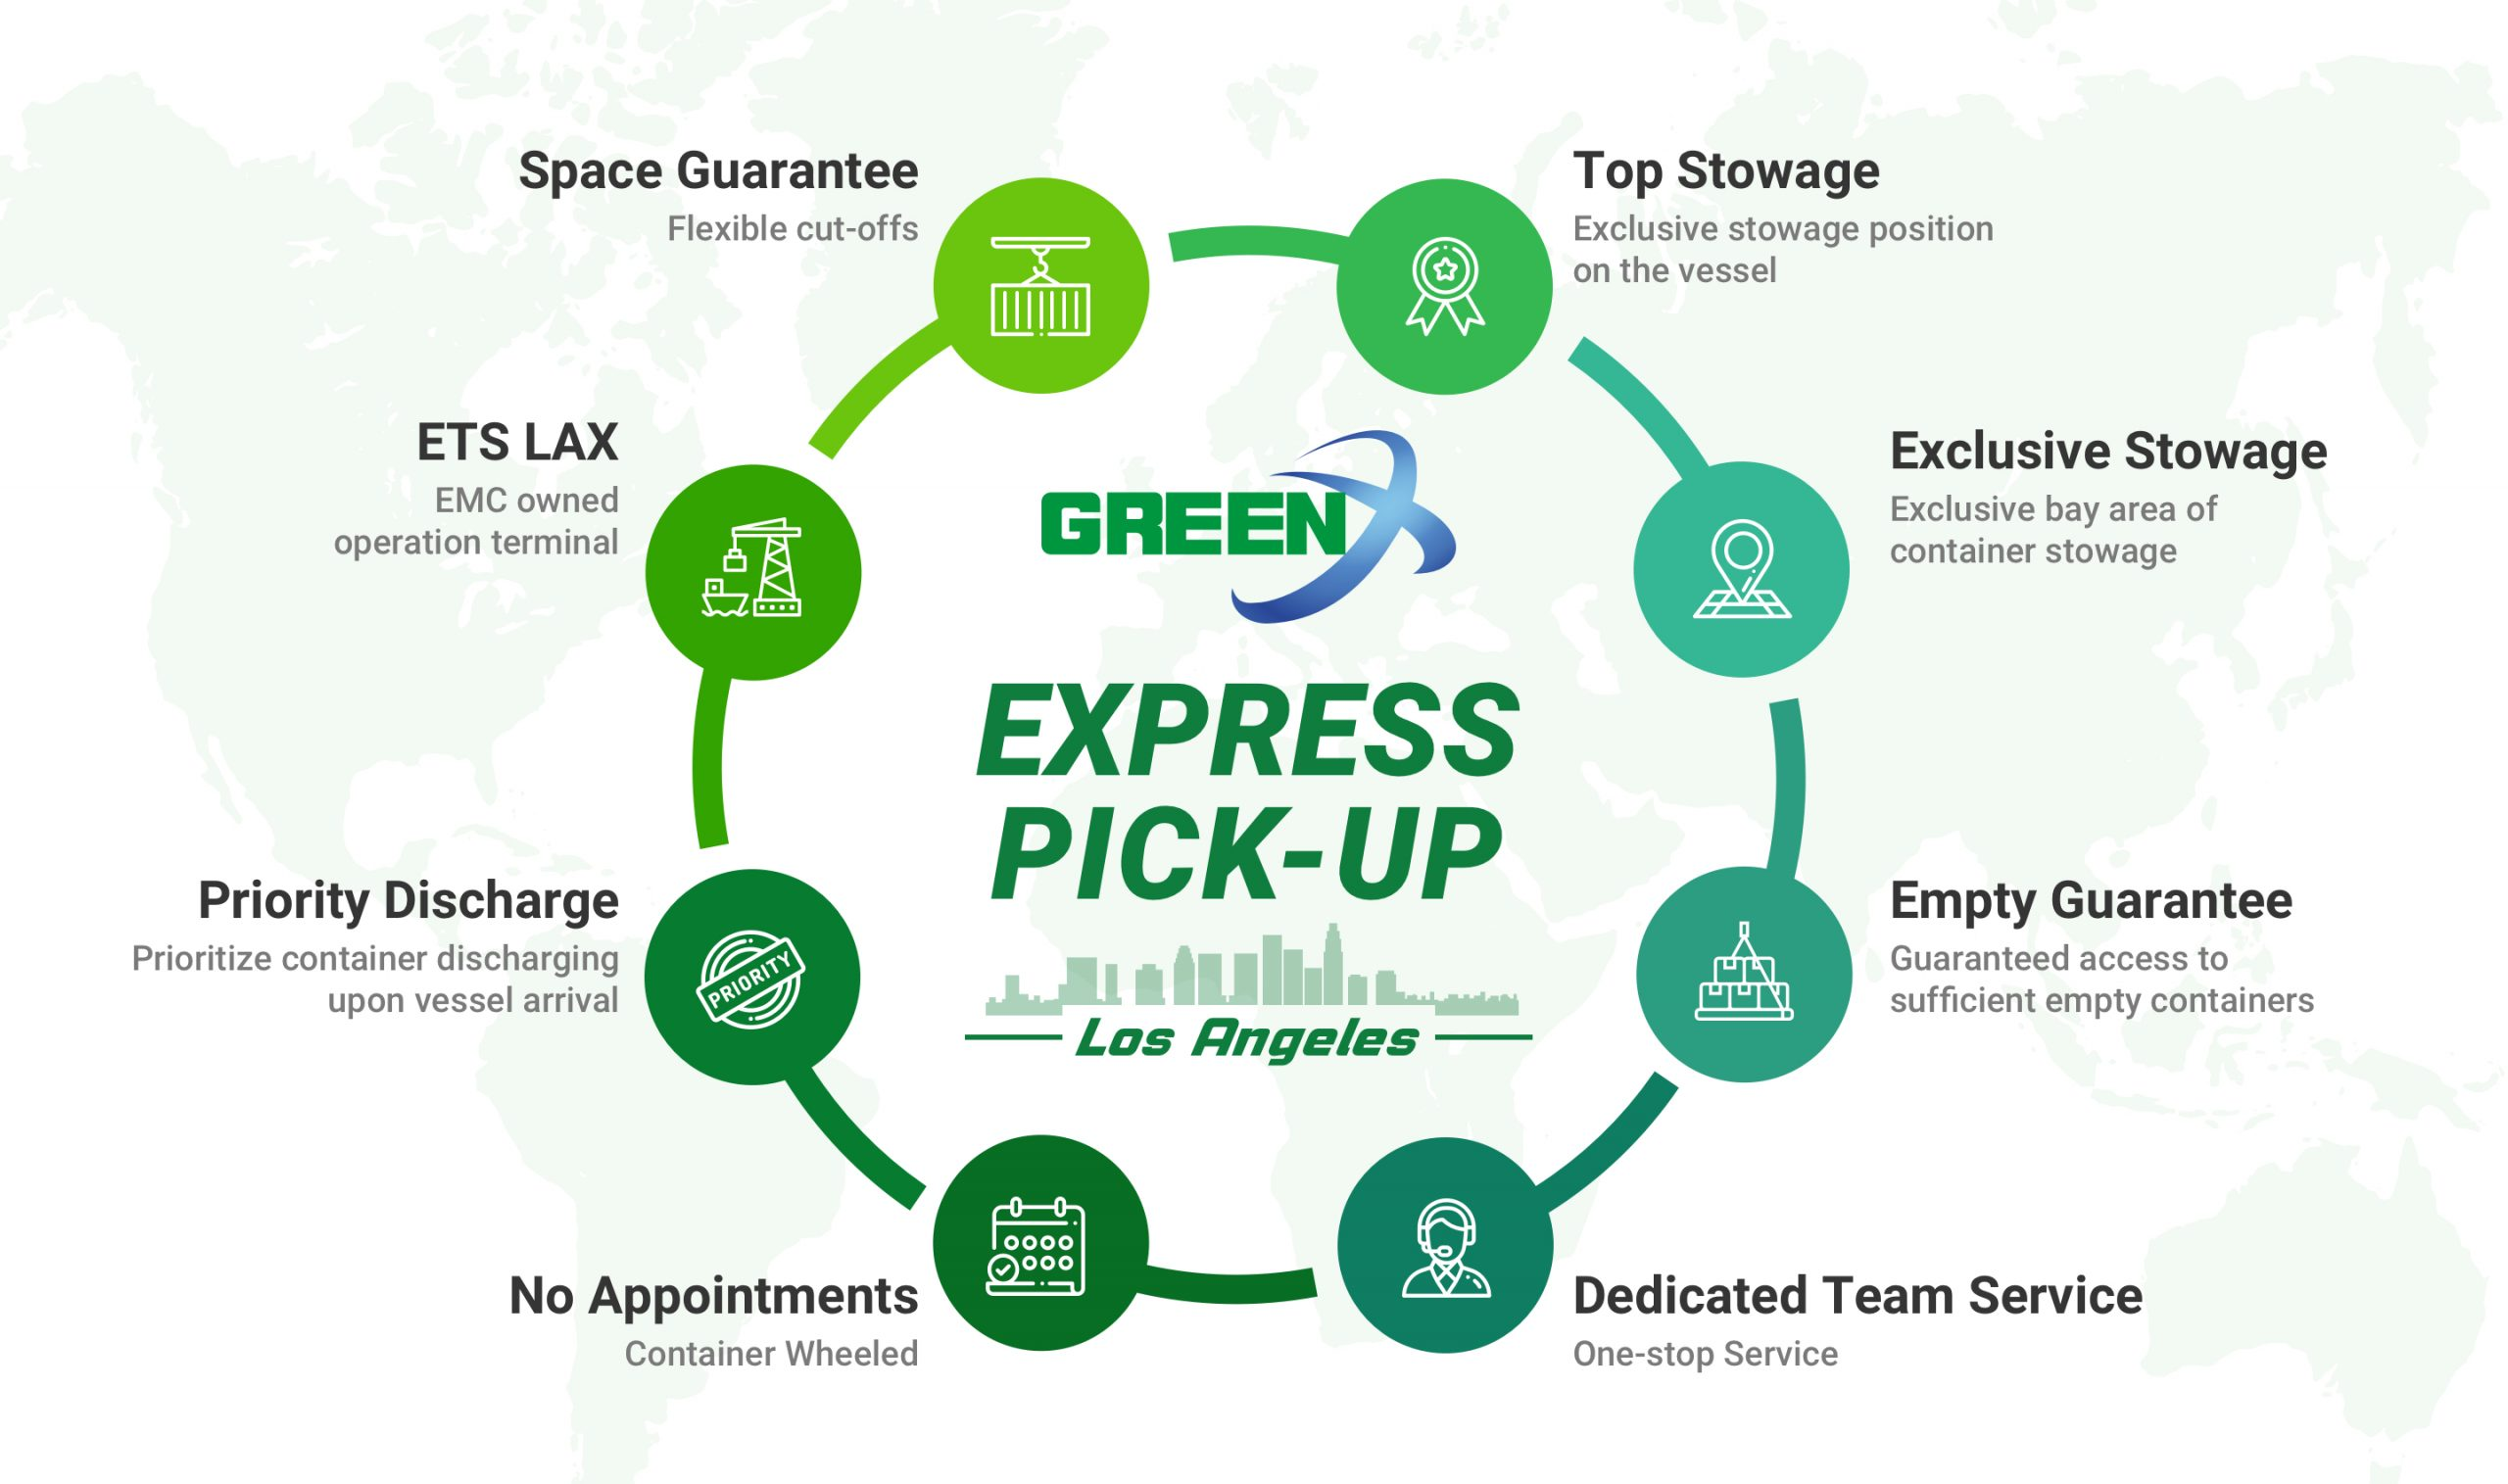 The GreenX Express Pick-up Service